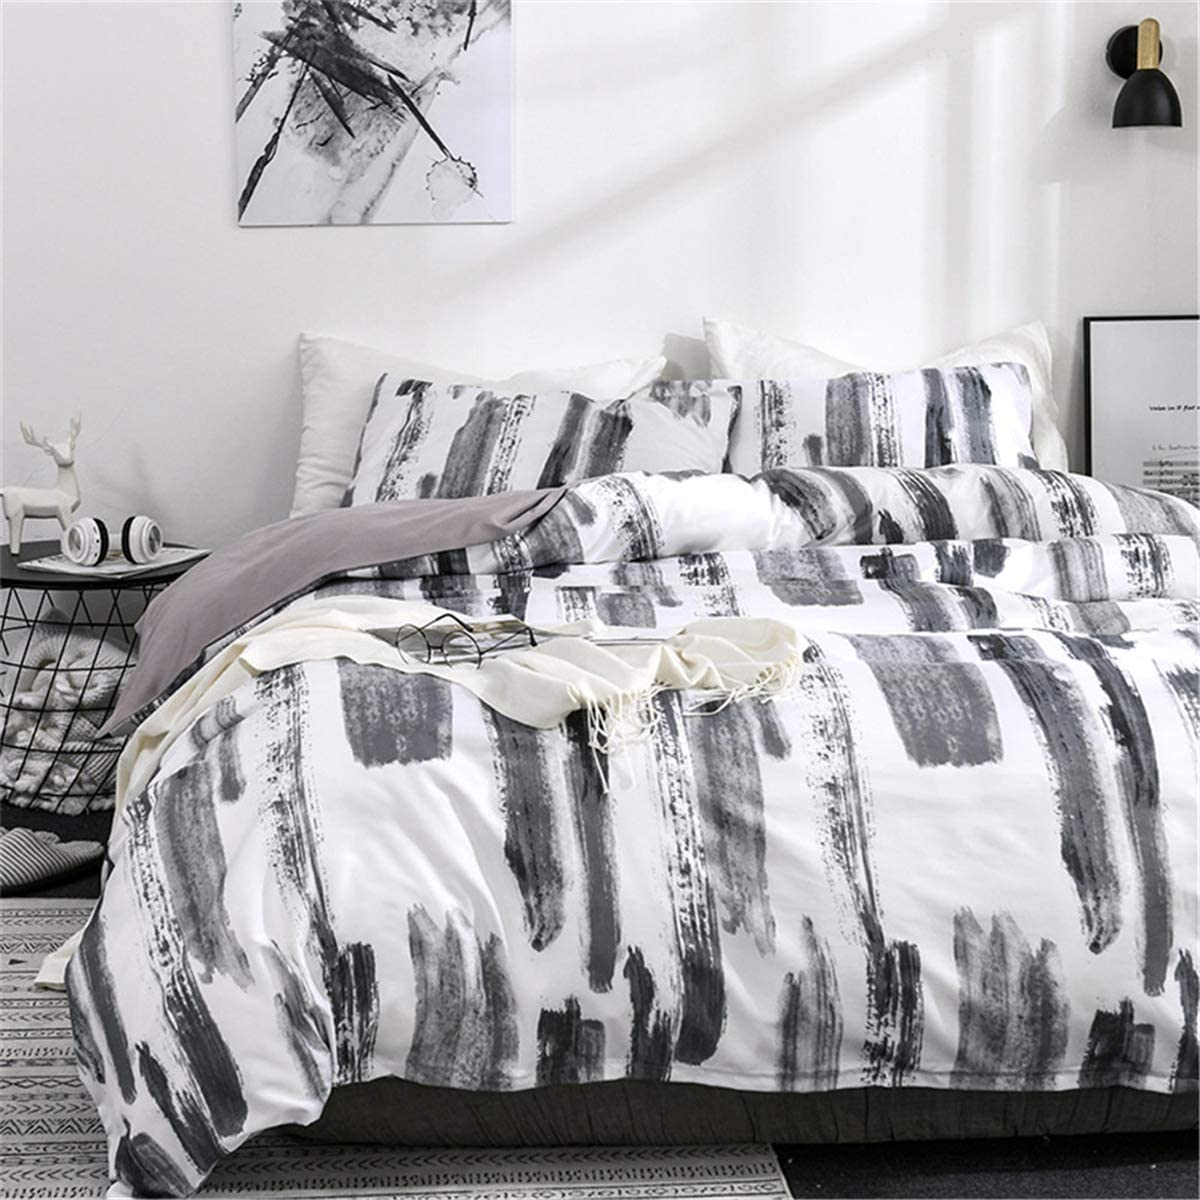 ADASMILE A & S Black and White Ink Bedding Cover Set Graffiti Chinese Art Abstract Duvet Cover 3 Pieces,1 Duvet Cover with 2 Pillow Shams, No Comforter,Full